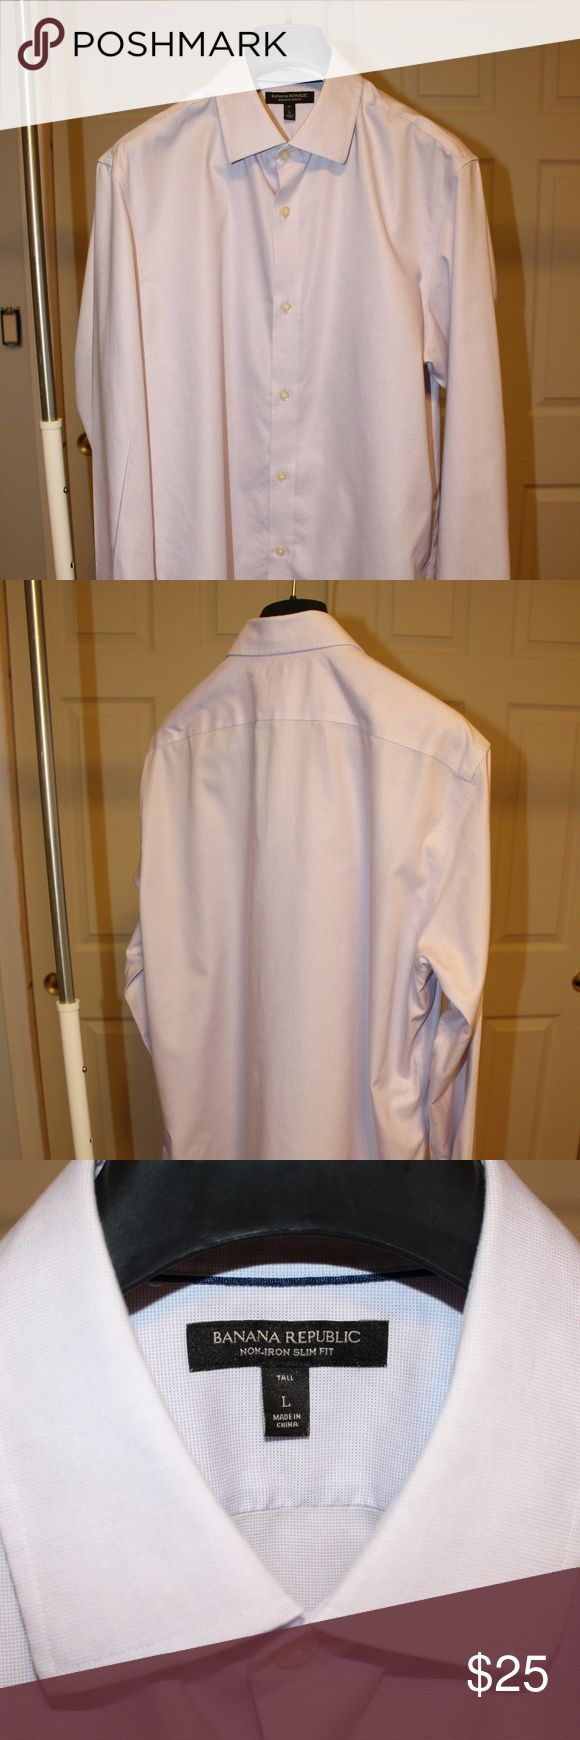 BR Non-Iron Slim Fit Dress Shirt BR Non-Iron Slim Fit Dress Shirt Size: L Tall Color: Lavender Condition: Like new, no stains, no tags, collar stays included  - Similar to *Grant Slim-Fit Non-Iron Stretch Solid Shirt* found on Banana Republic website. - Please search the BR website with previously mentioned *similar to title* for product details, fit, sizing, fabric, and care. Banana Republic Shirts Dress Shirts